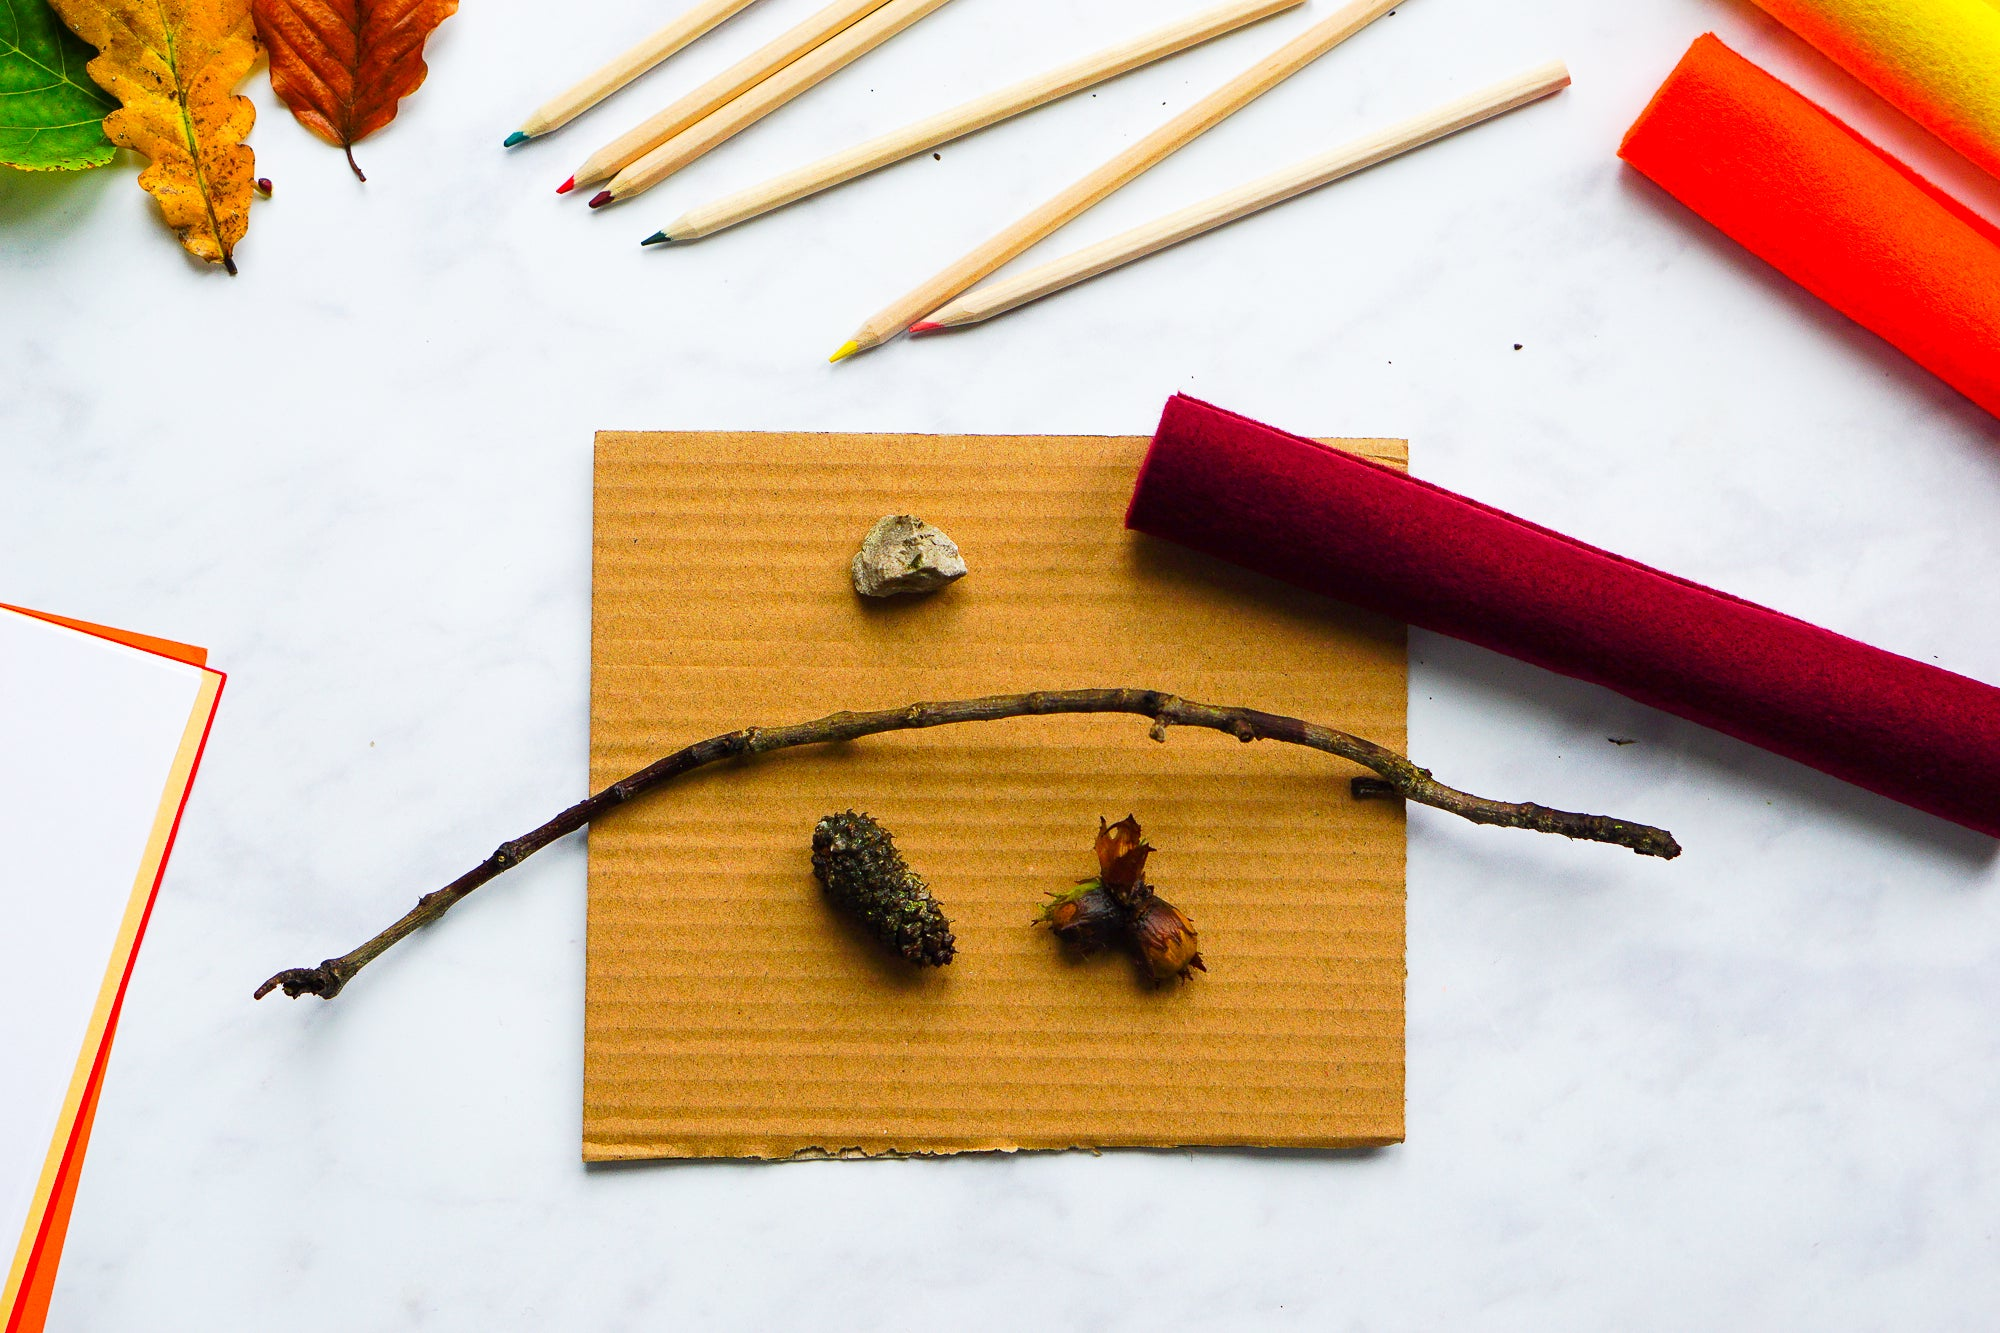 Set up an autumn nature and craft table to learn about the seasons